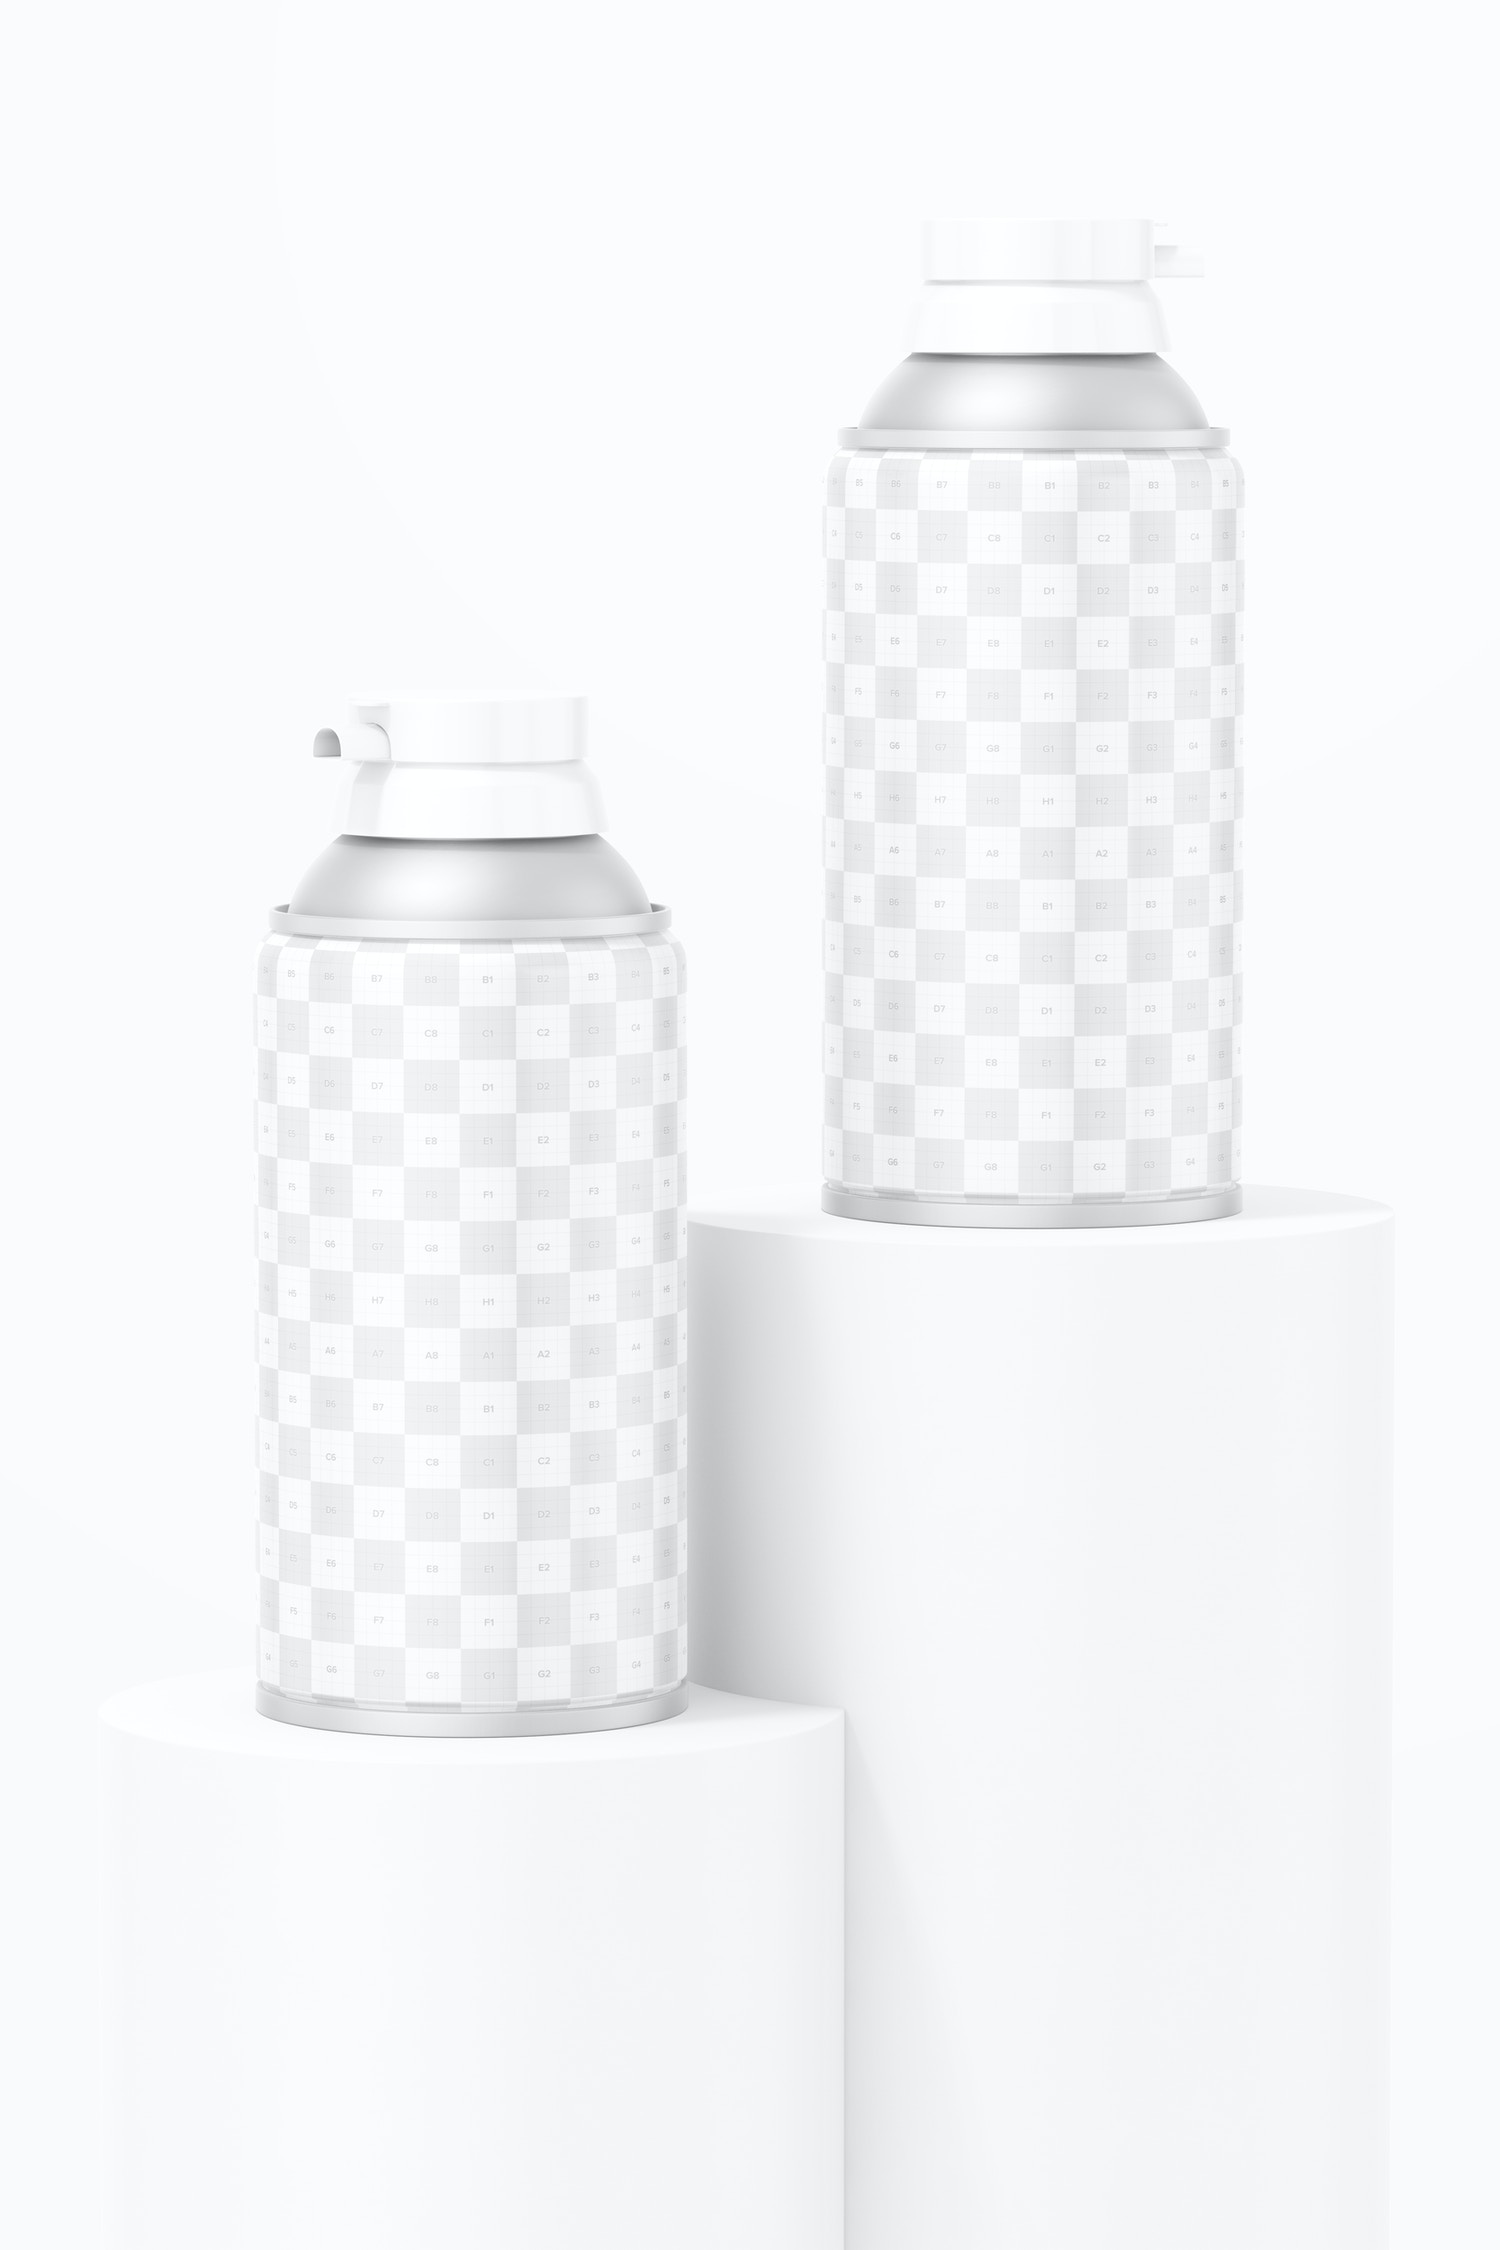 10.5 oz Foam Cans Mockup, on Surfaces